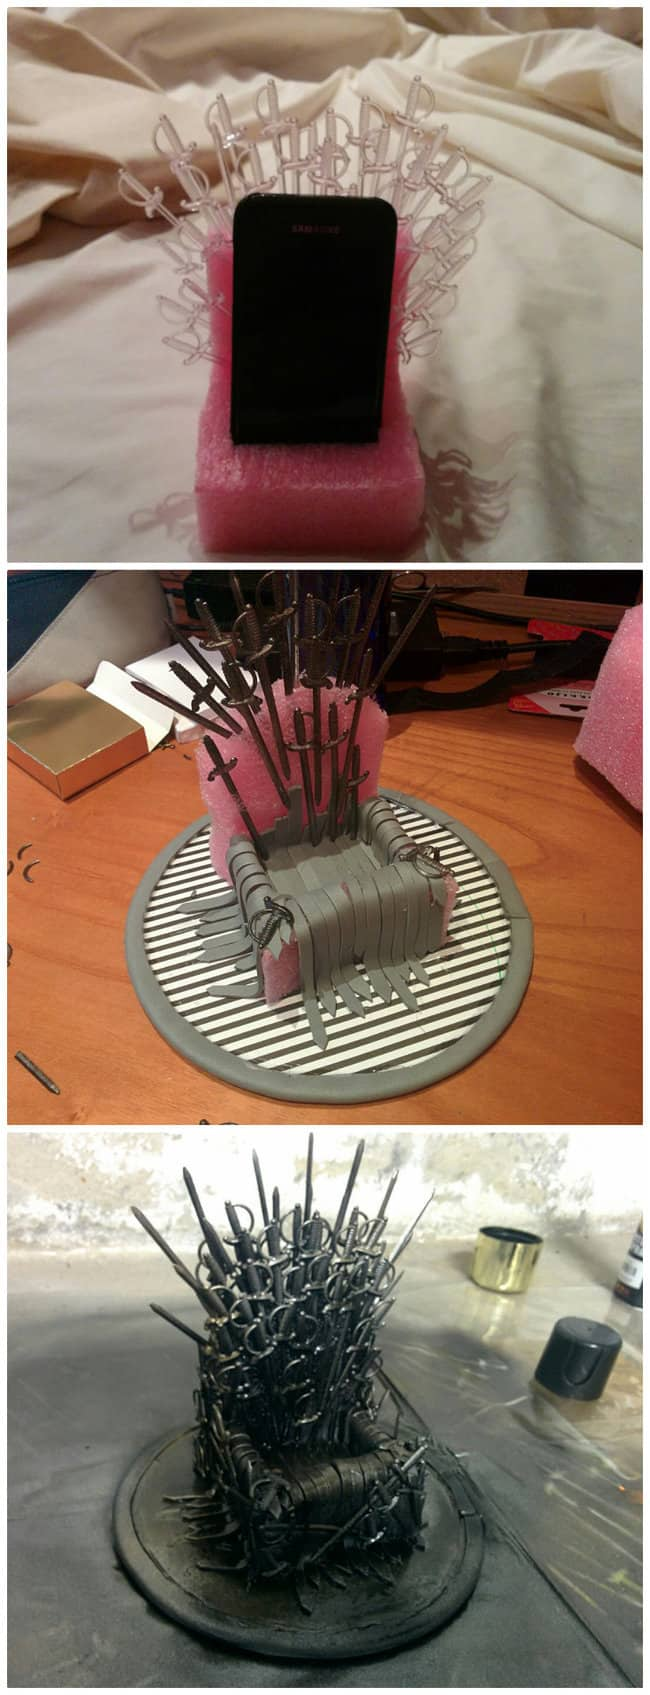 25 brilliant game of thrones diy projects all men must craft